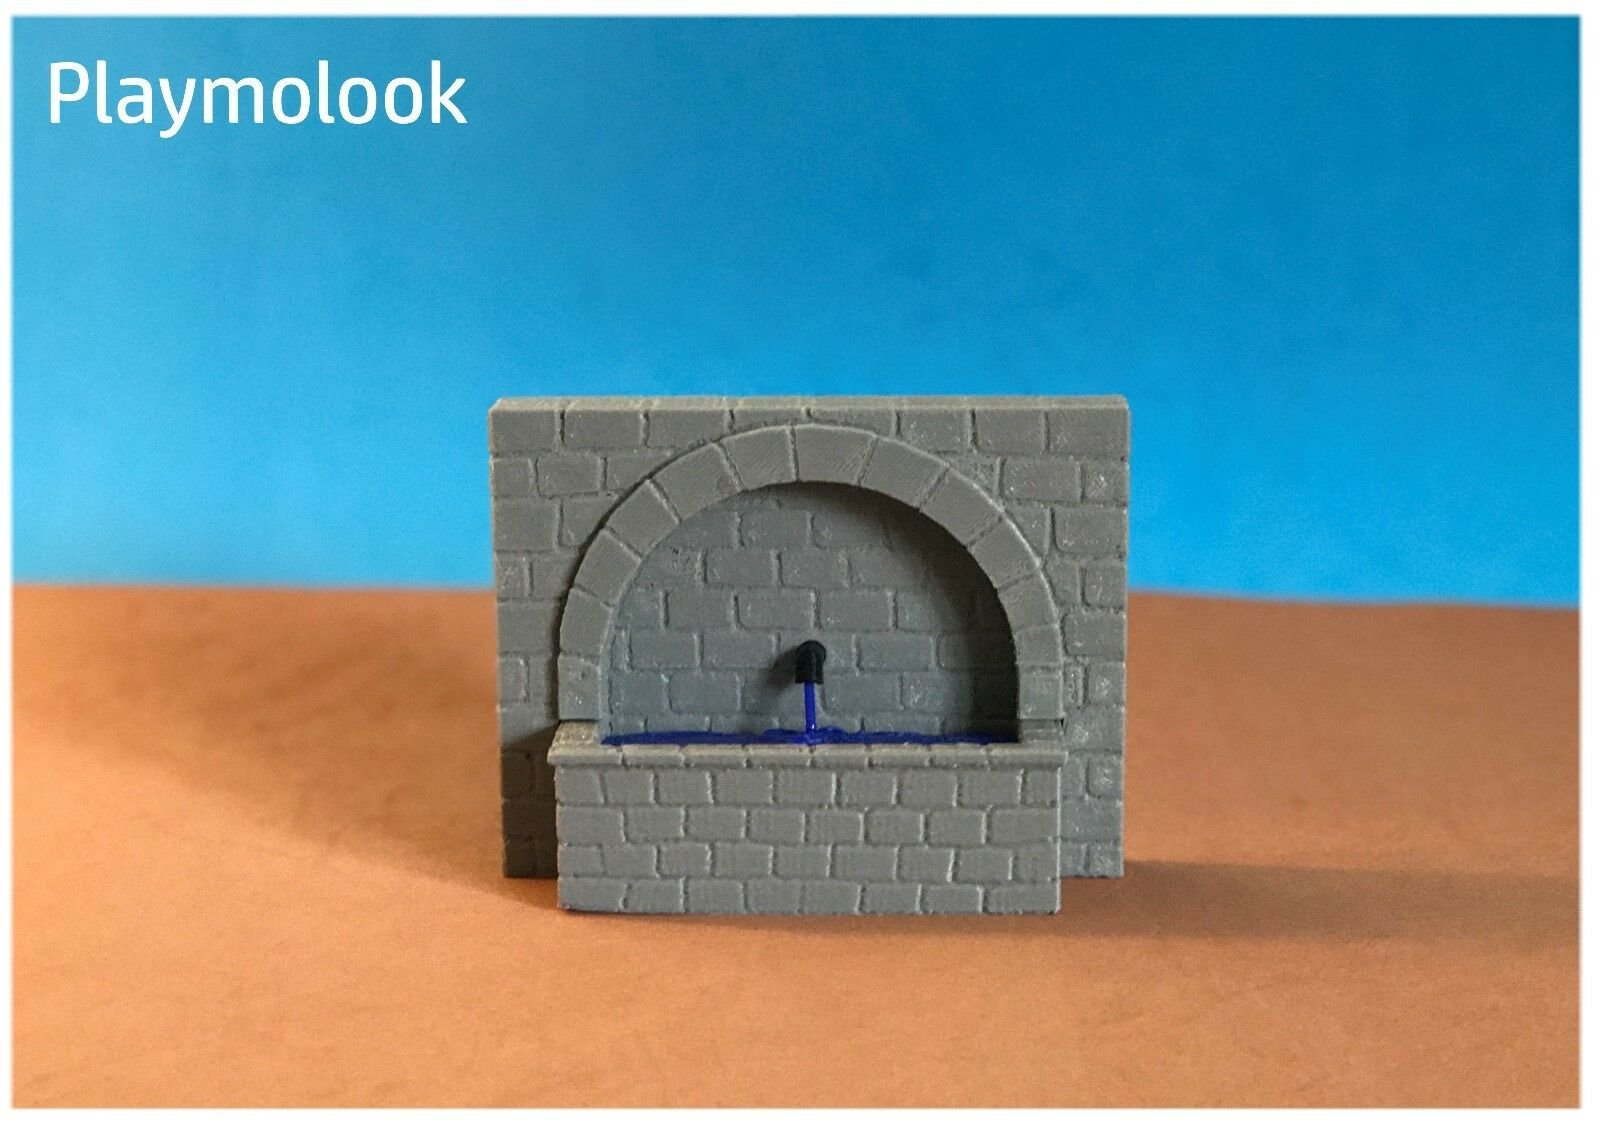 SOURCE FOUNTAIN MEDIEVAL NATIVITY NATIVITY NATIVITY SCENE THE PIECES STAGE AND PLAYMOBIL DOESN'T 4fee1d